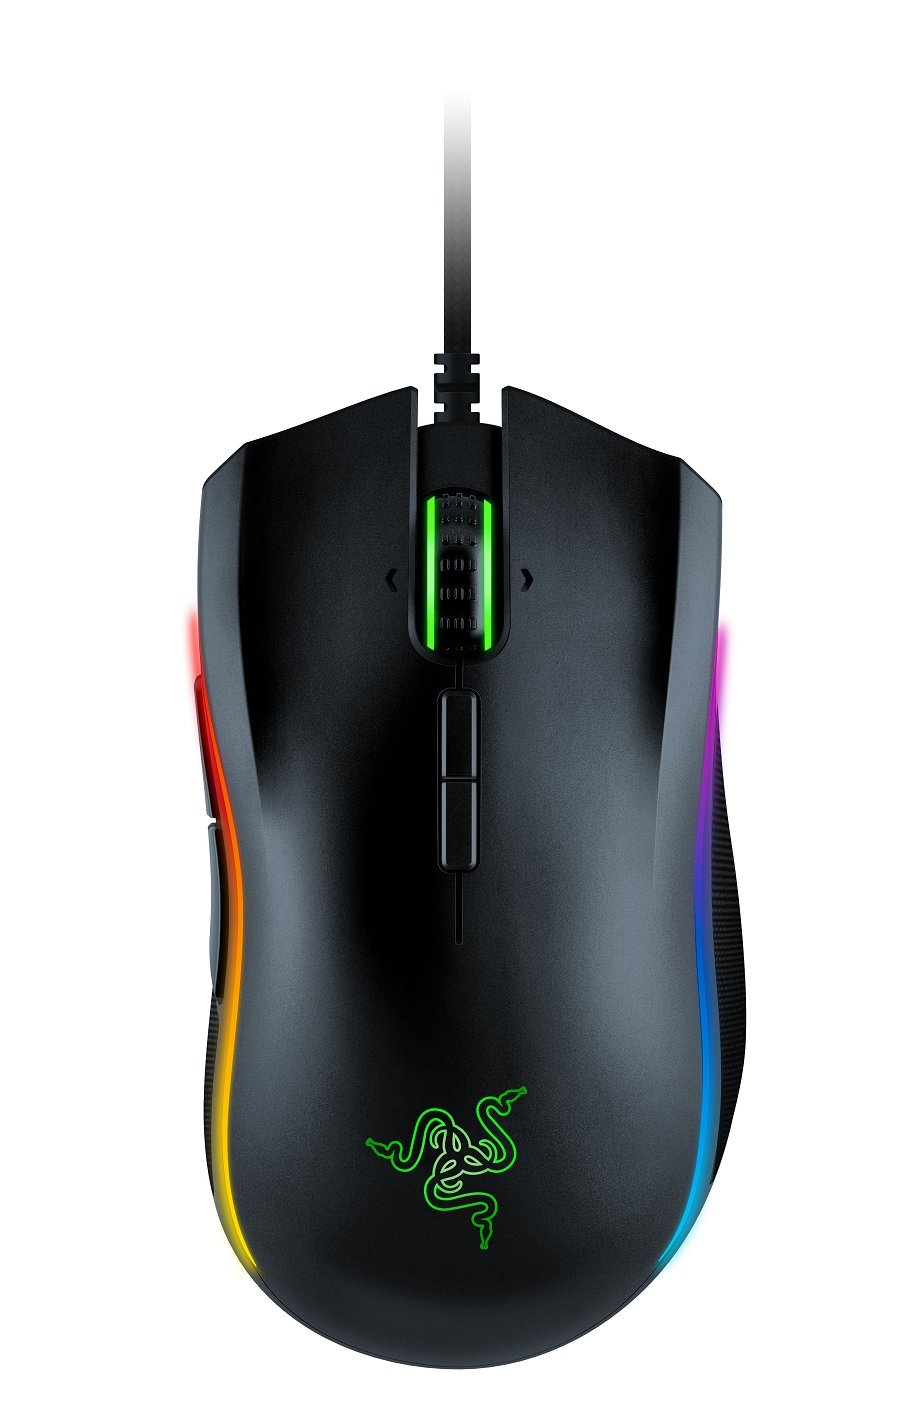 Razer Mamba Elite – Esports Performance - Ergonomic Gaming Mouse – 5G True 16,000 Optical DPI Sensor – Chroma Enabled by Razer